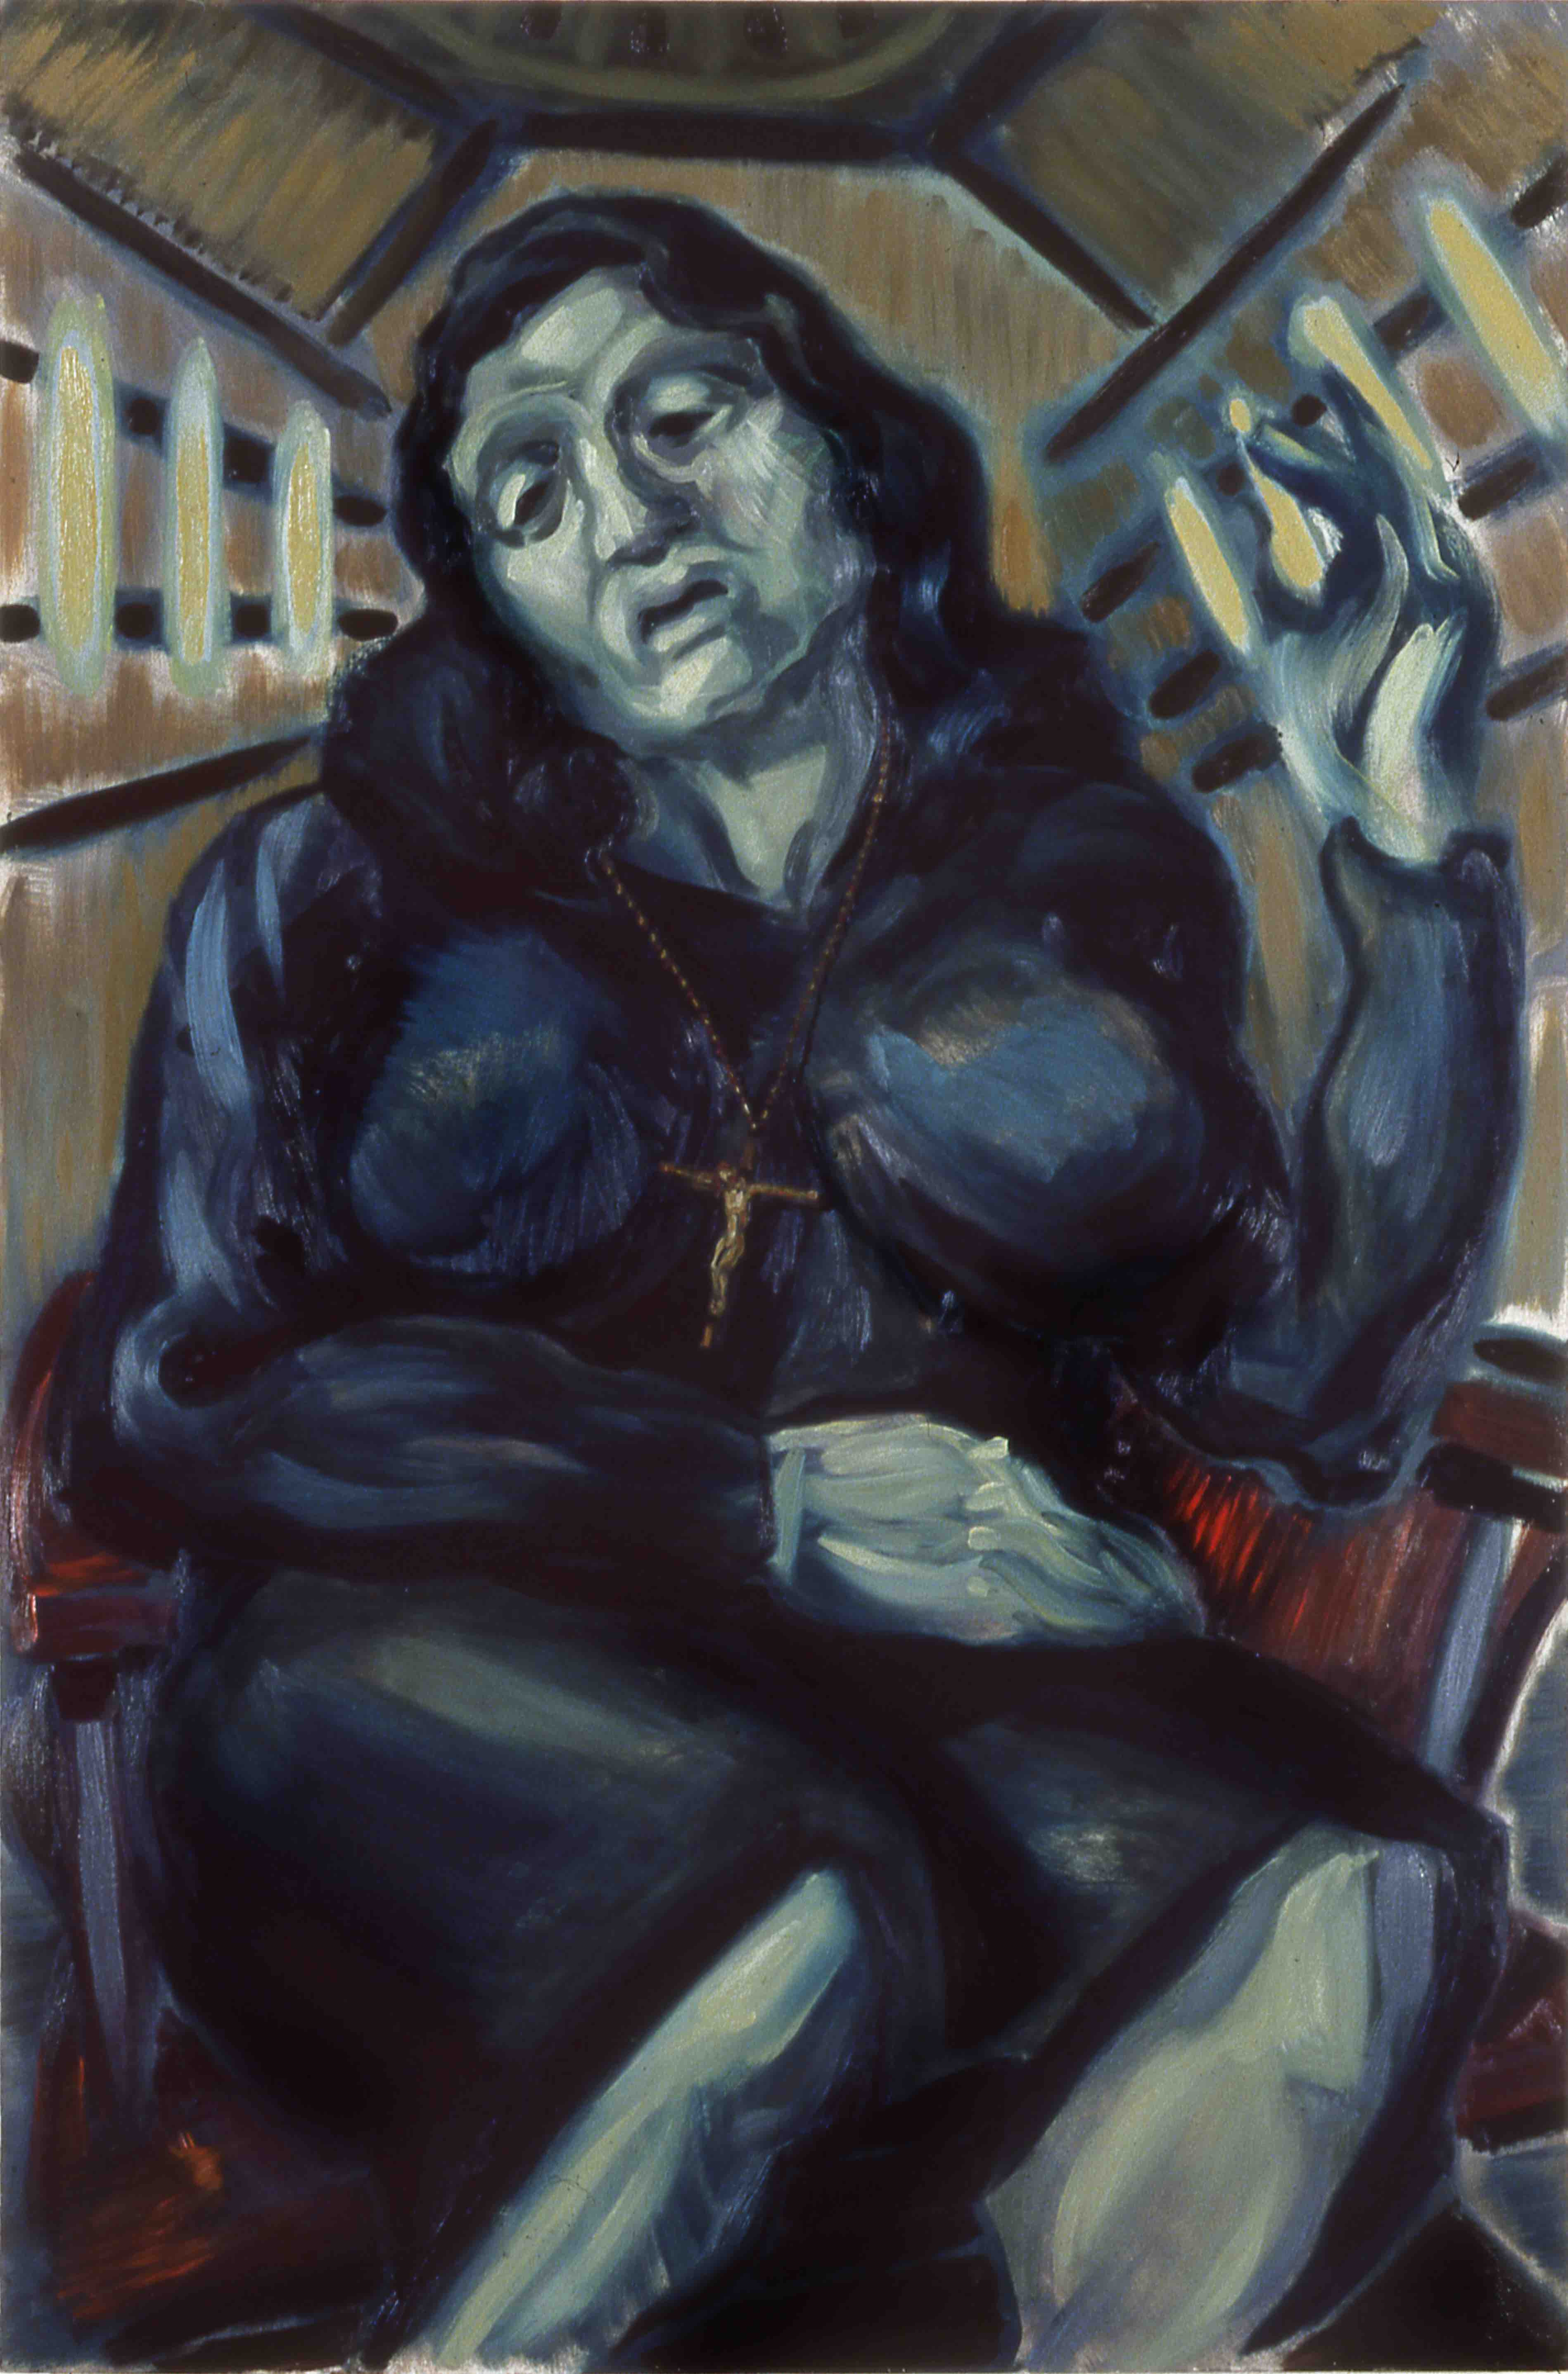 THE PROFESSIONAL MOURNER, painted by Vince Mancuso in 1990, oil on canvas 4x6 feet. Available